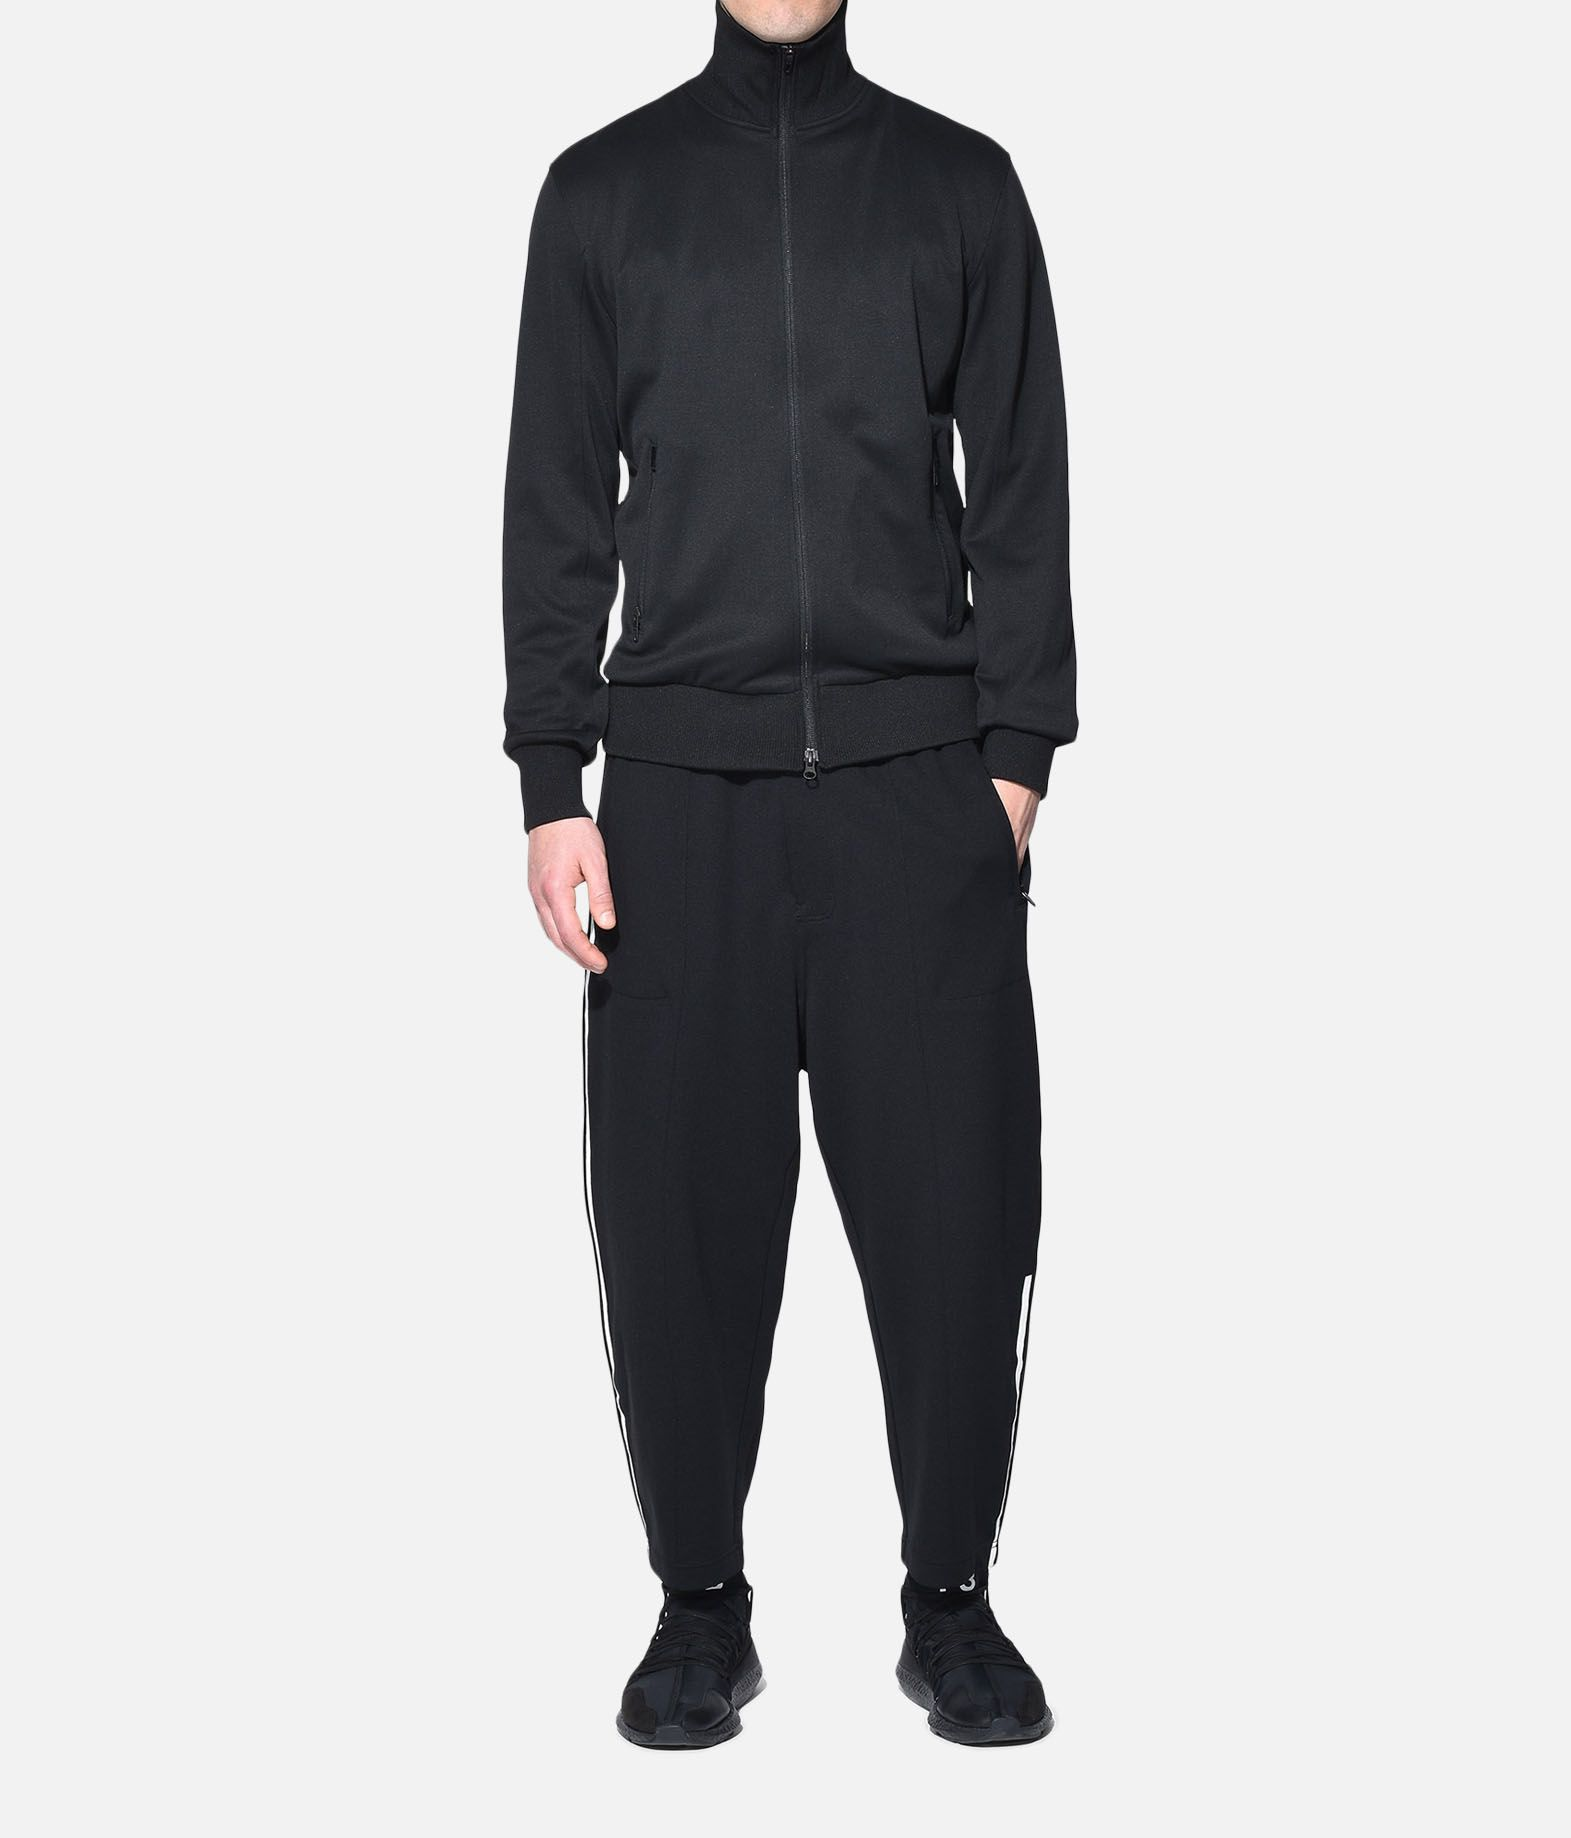 Y-3 Y-3 CLASSIC TRACK JACKET Track top Homme a